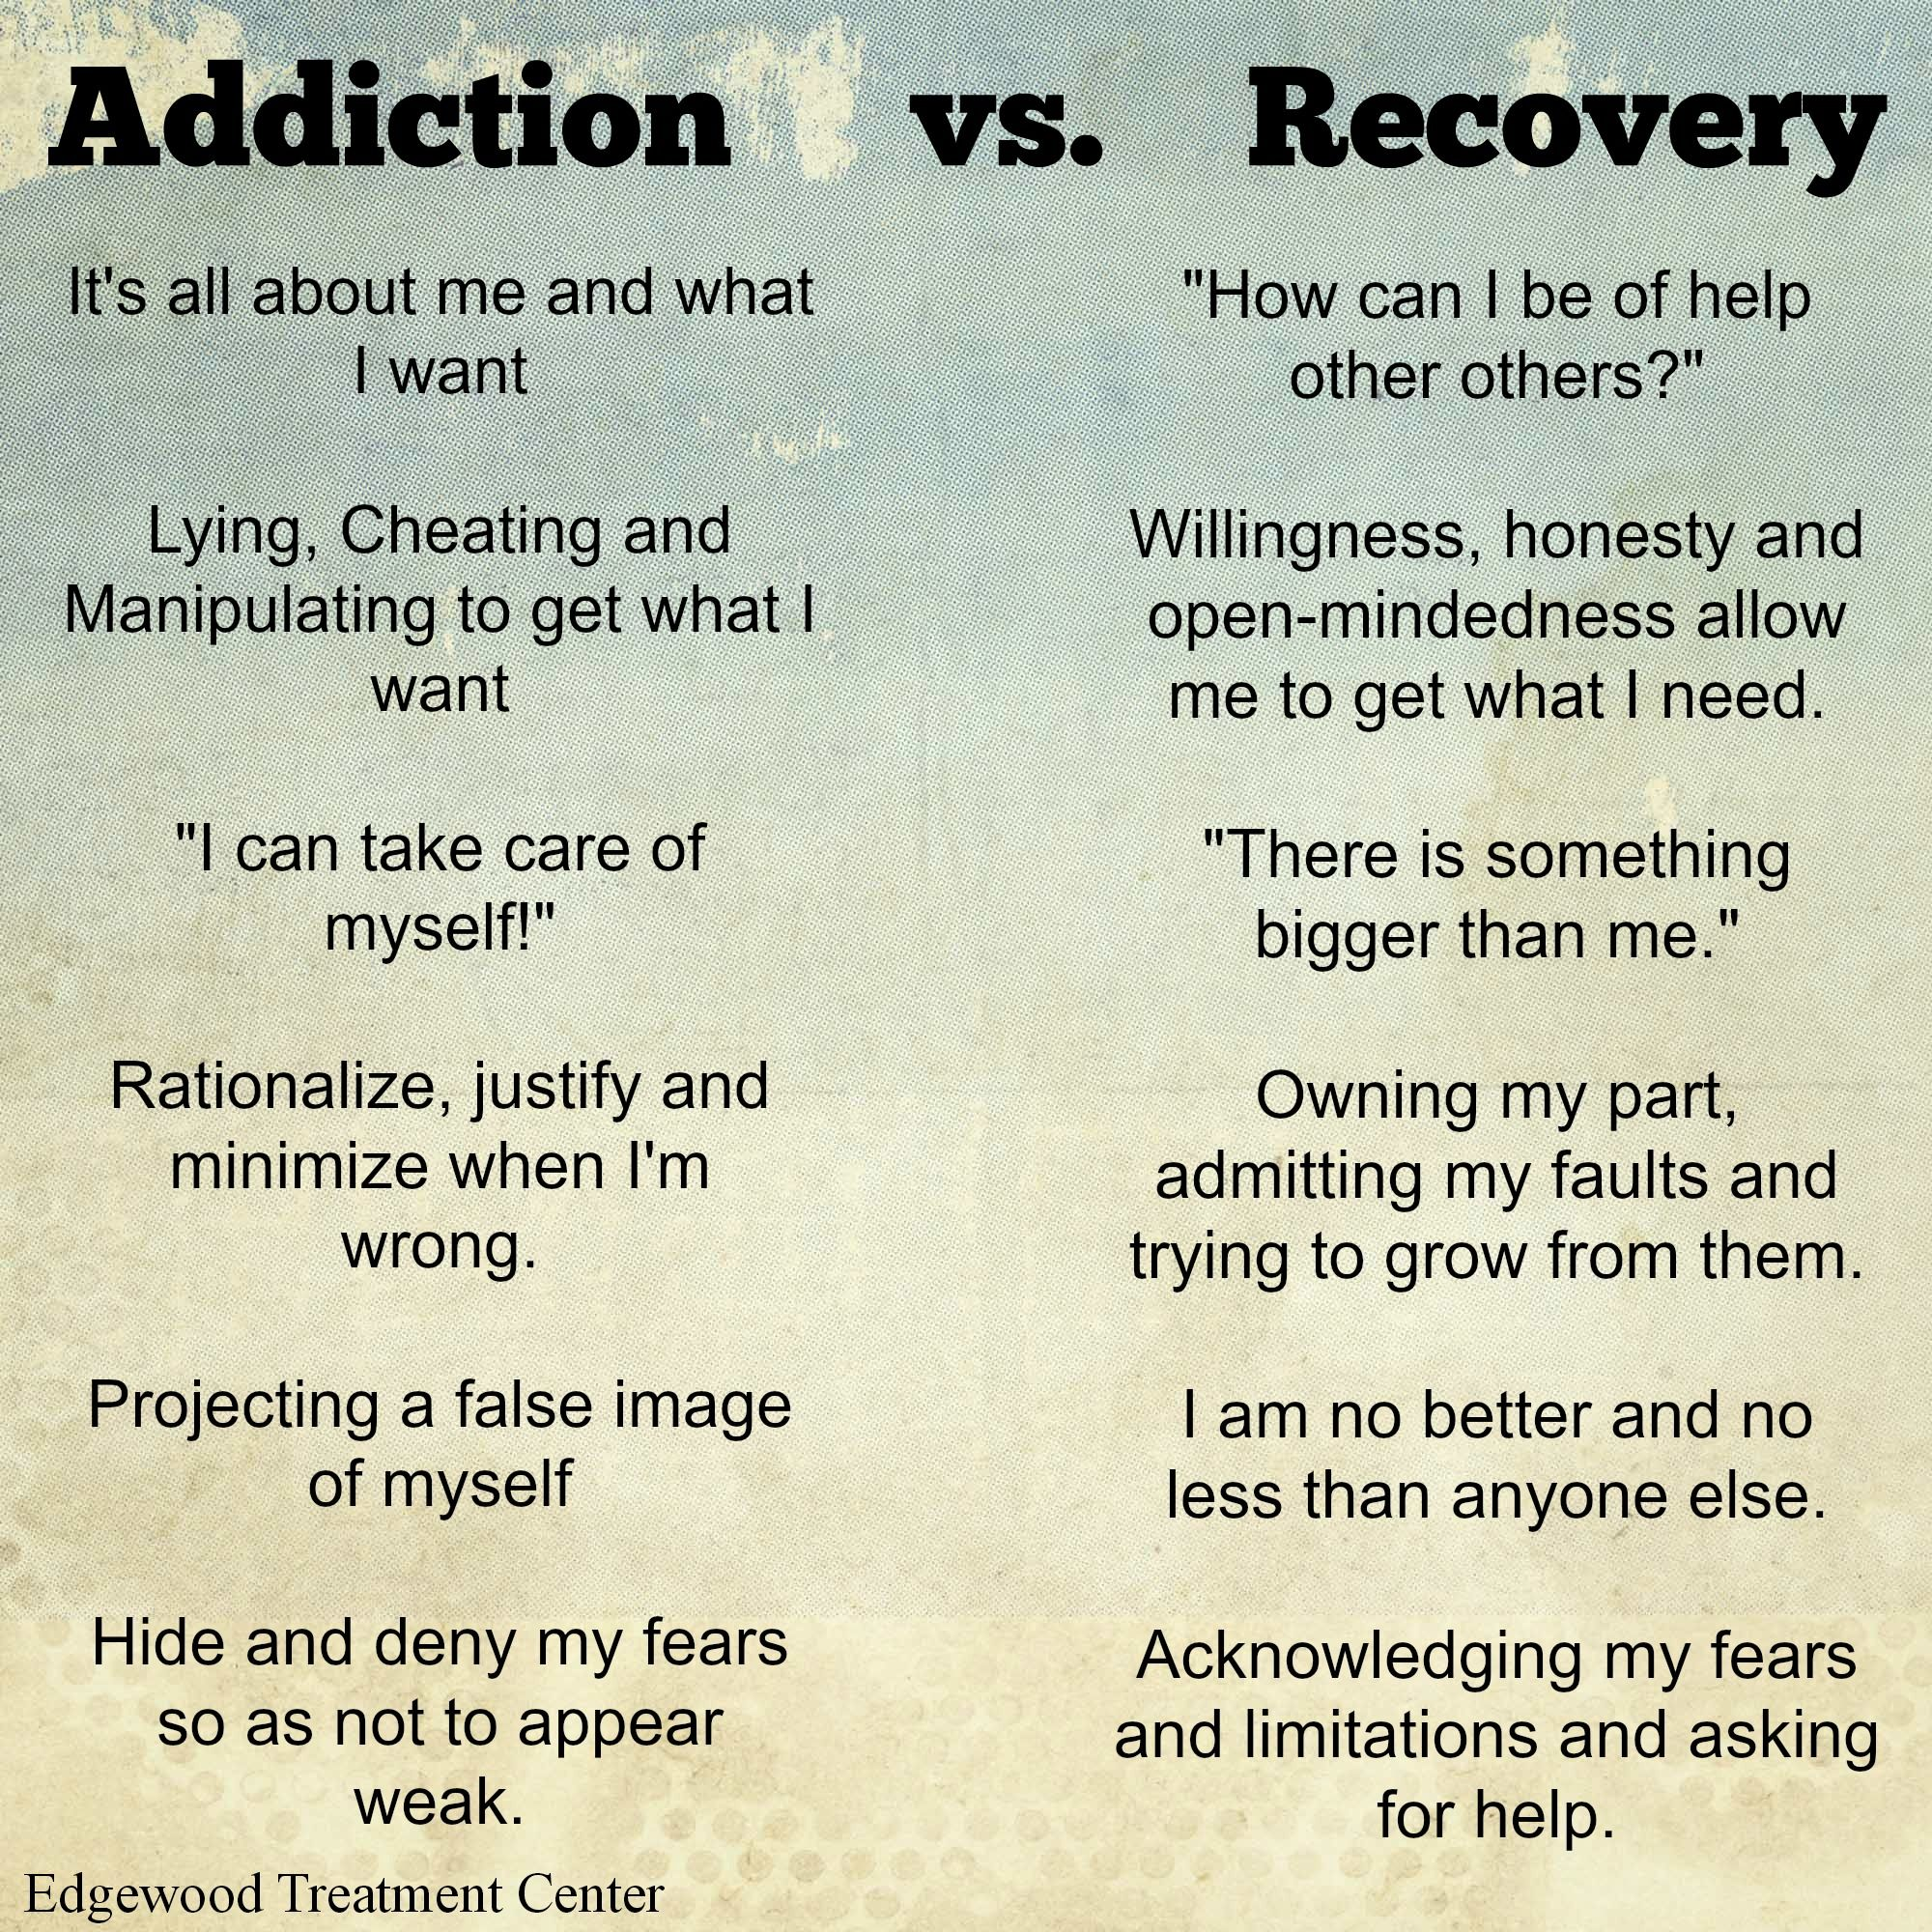 addiction vs recovery | inspirational | addiction recovery, recovery